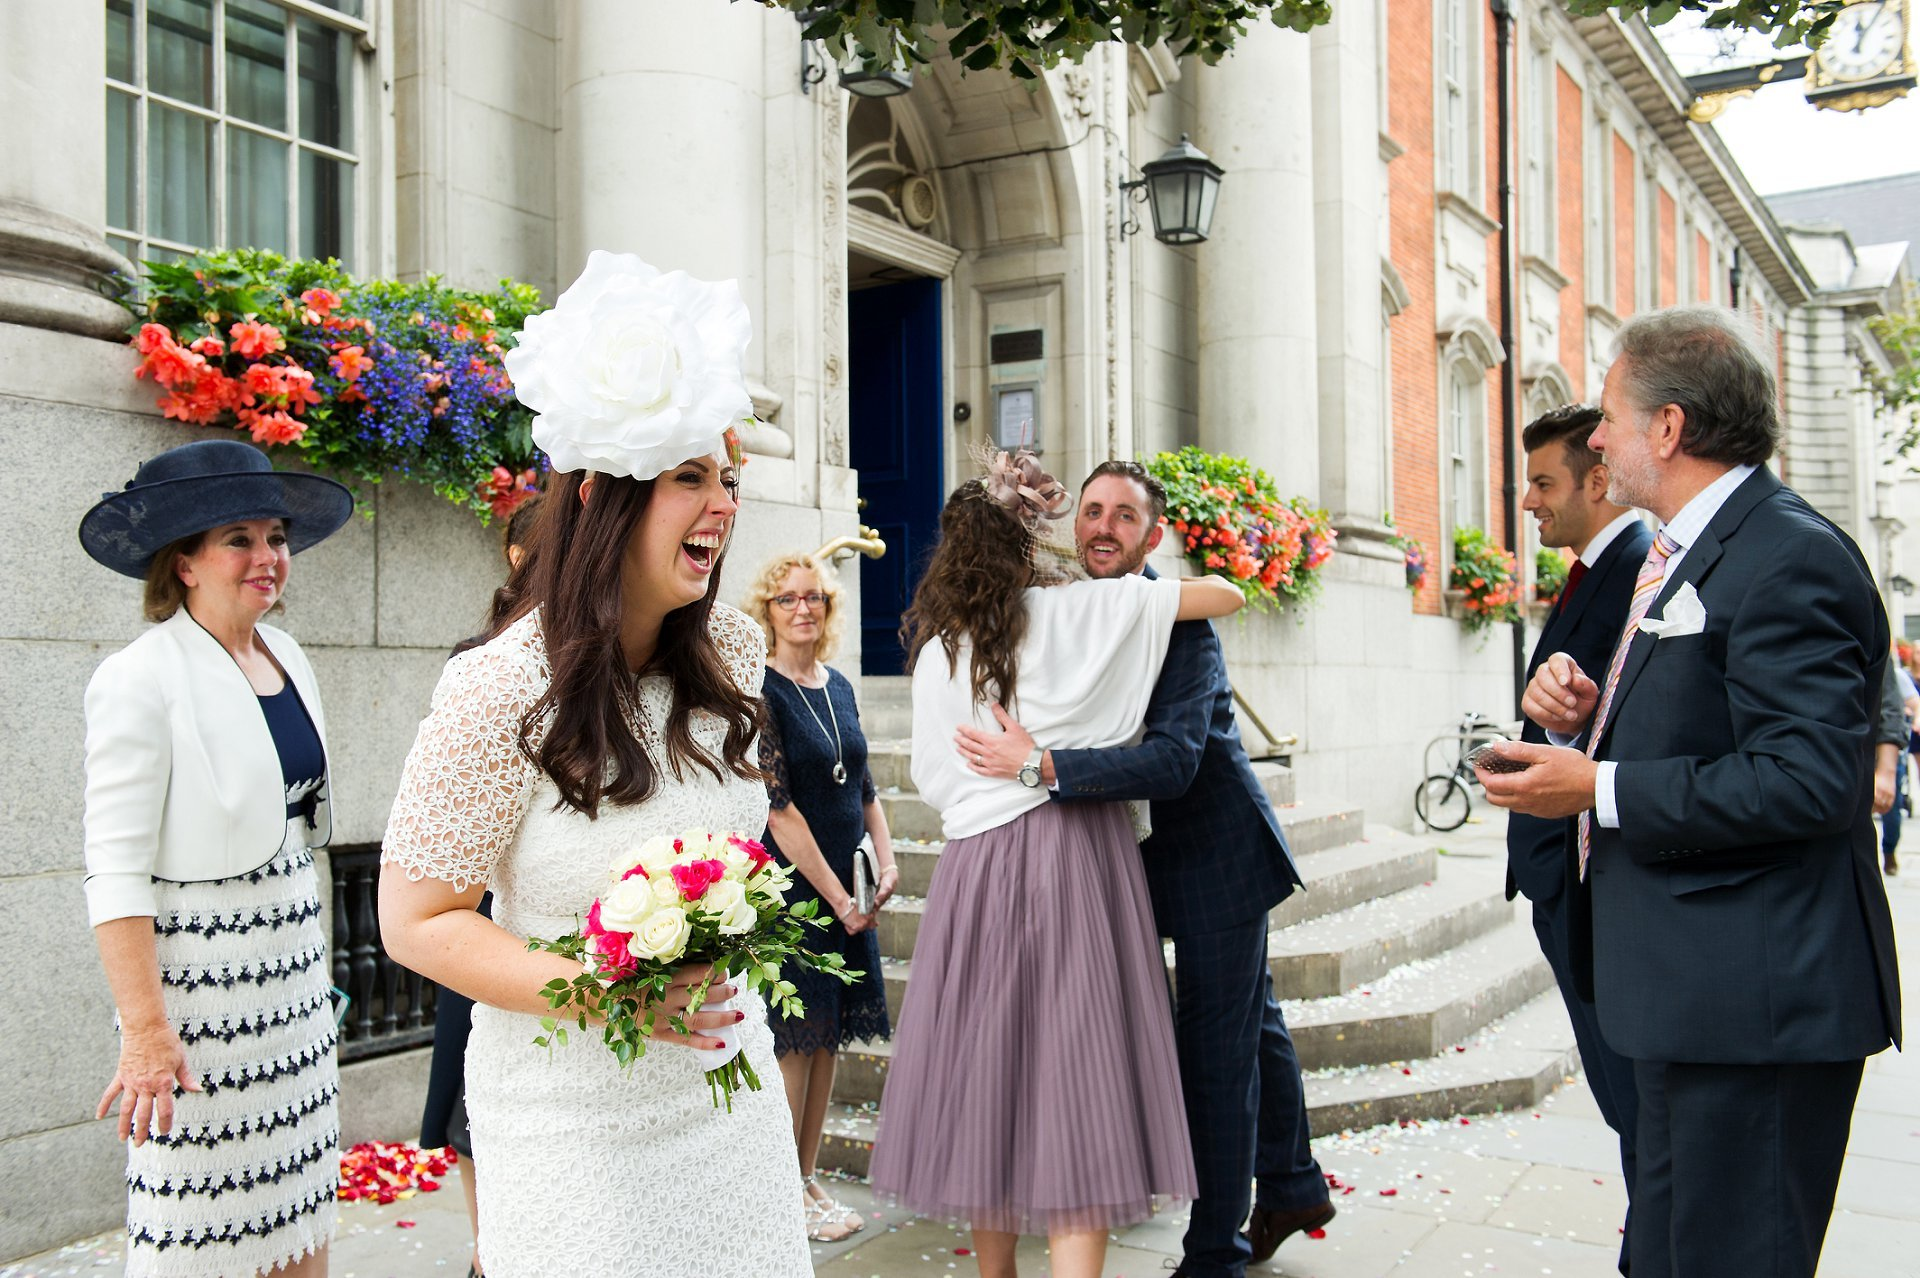 London wedding photography capturing the joy of a recently married bride outside Chelsea Register Office